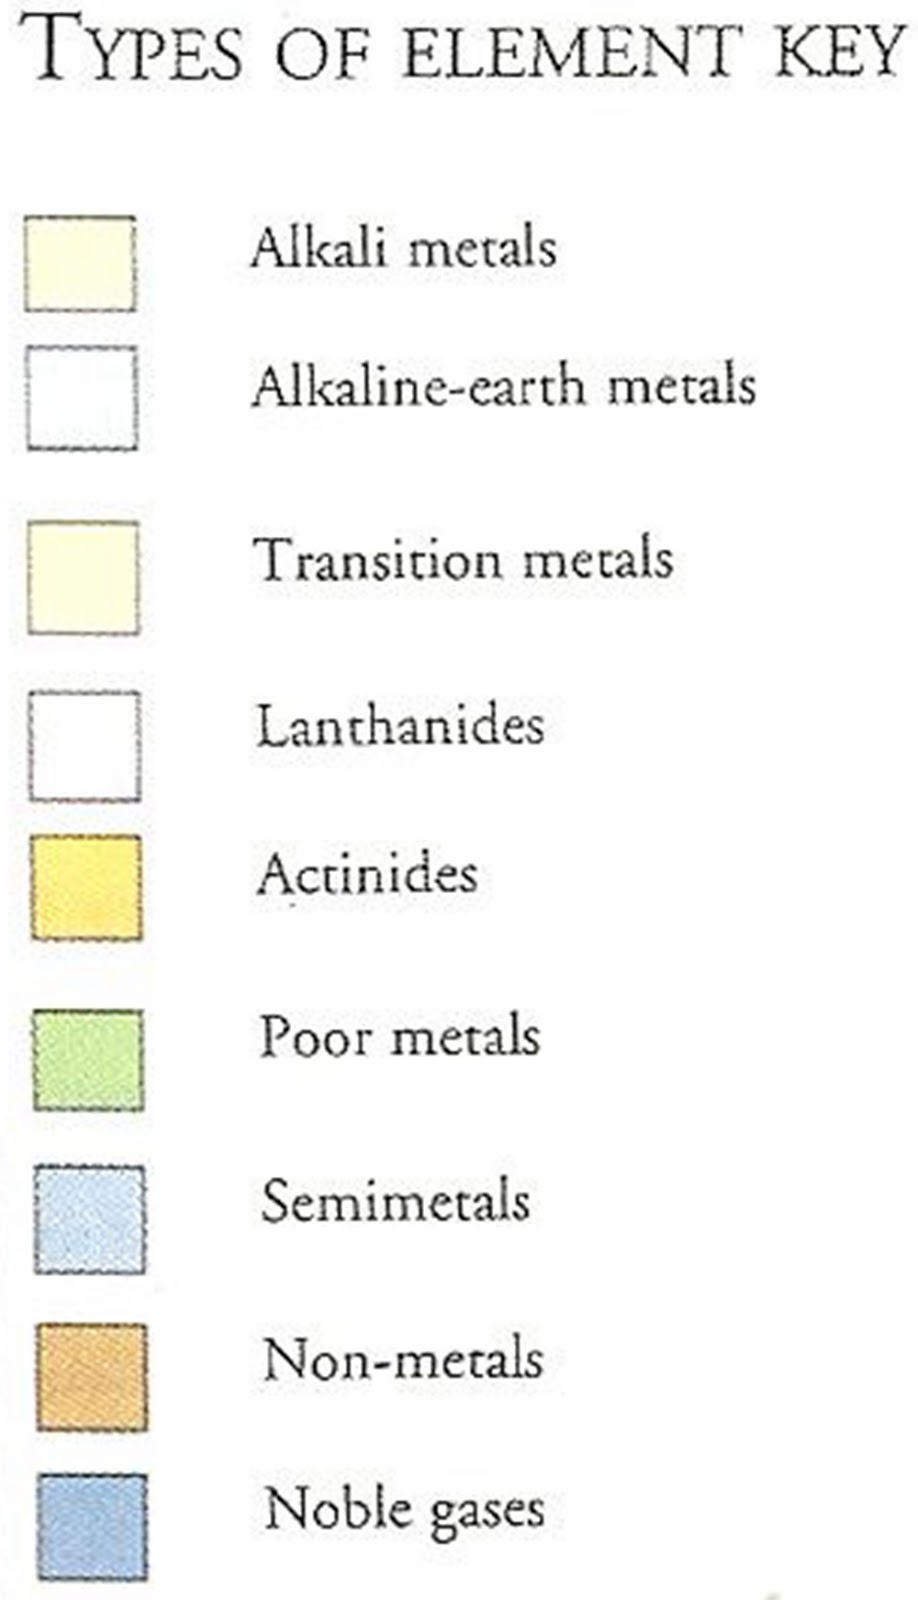 Manash subhaditya edusoft periodic table pictorial journey of periodic table pictorial journey of metals part 2 urtaz Image collections